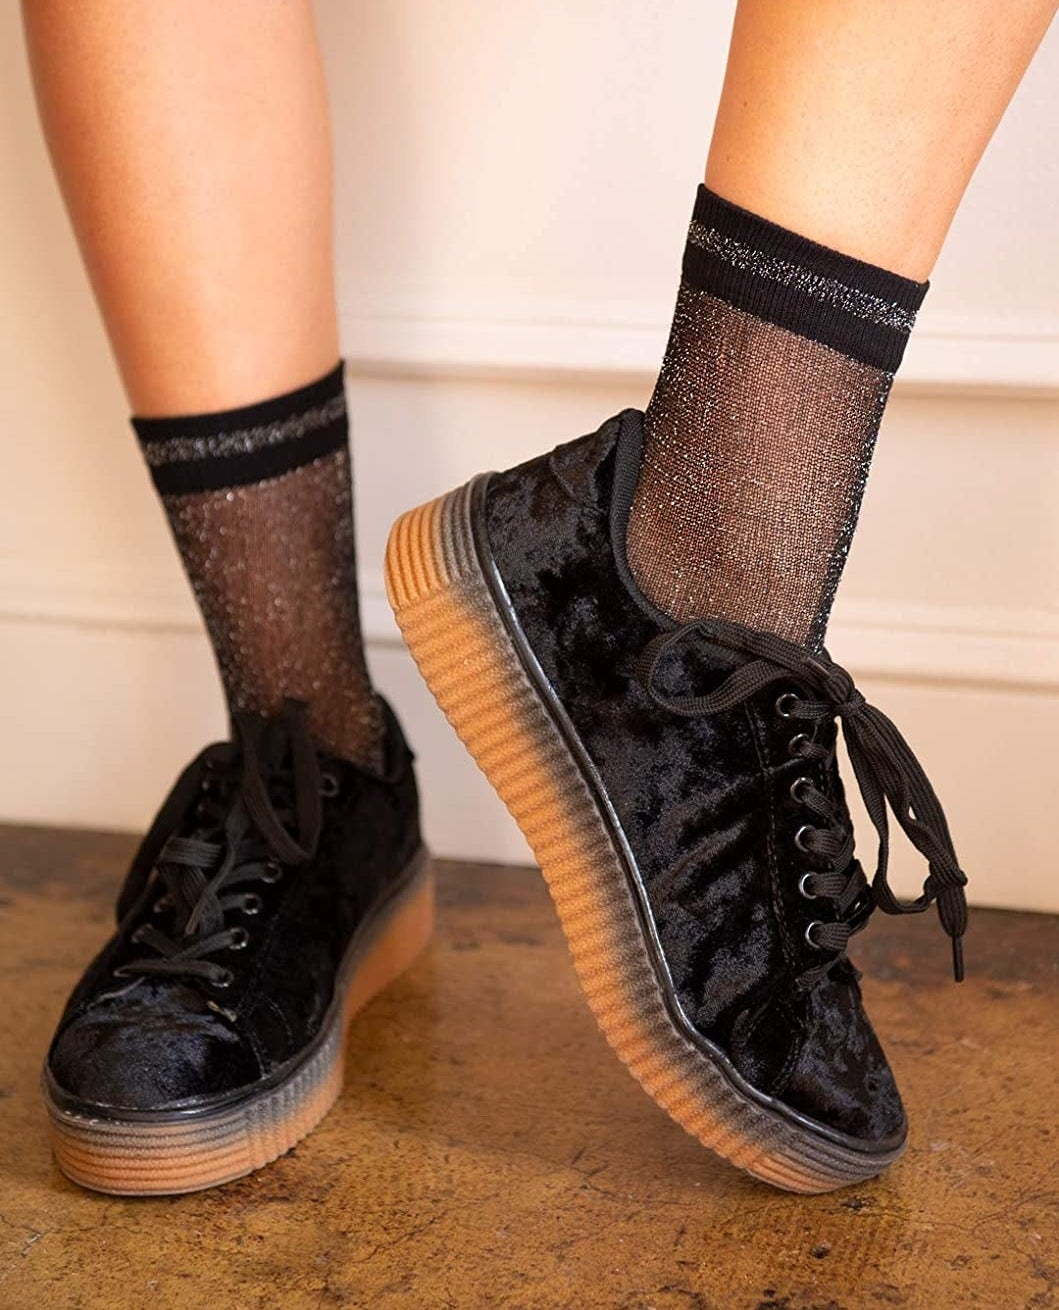 model wearing the black glittery socks with black sneakers